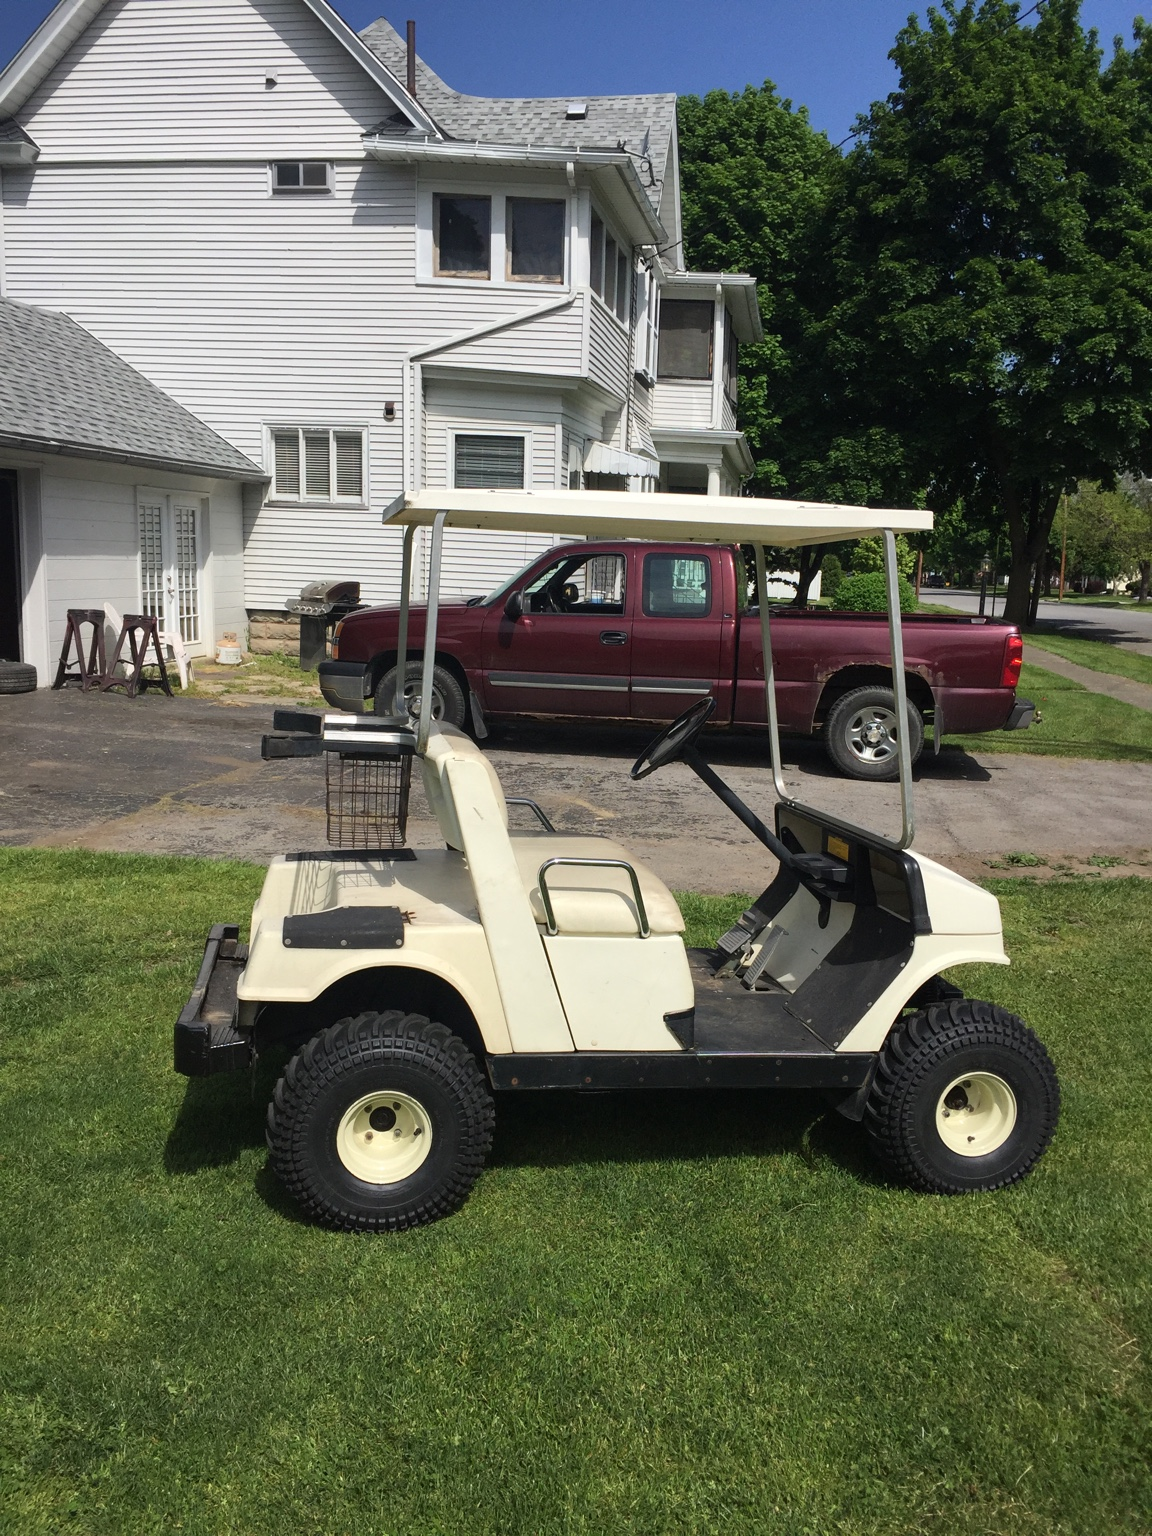 yamaha g9 for sale ForG9 Yamaha Golf Cart Parts